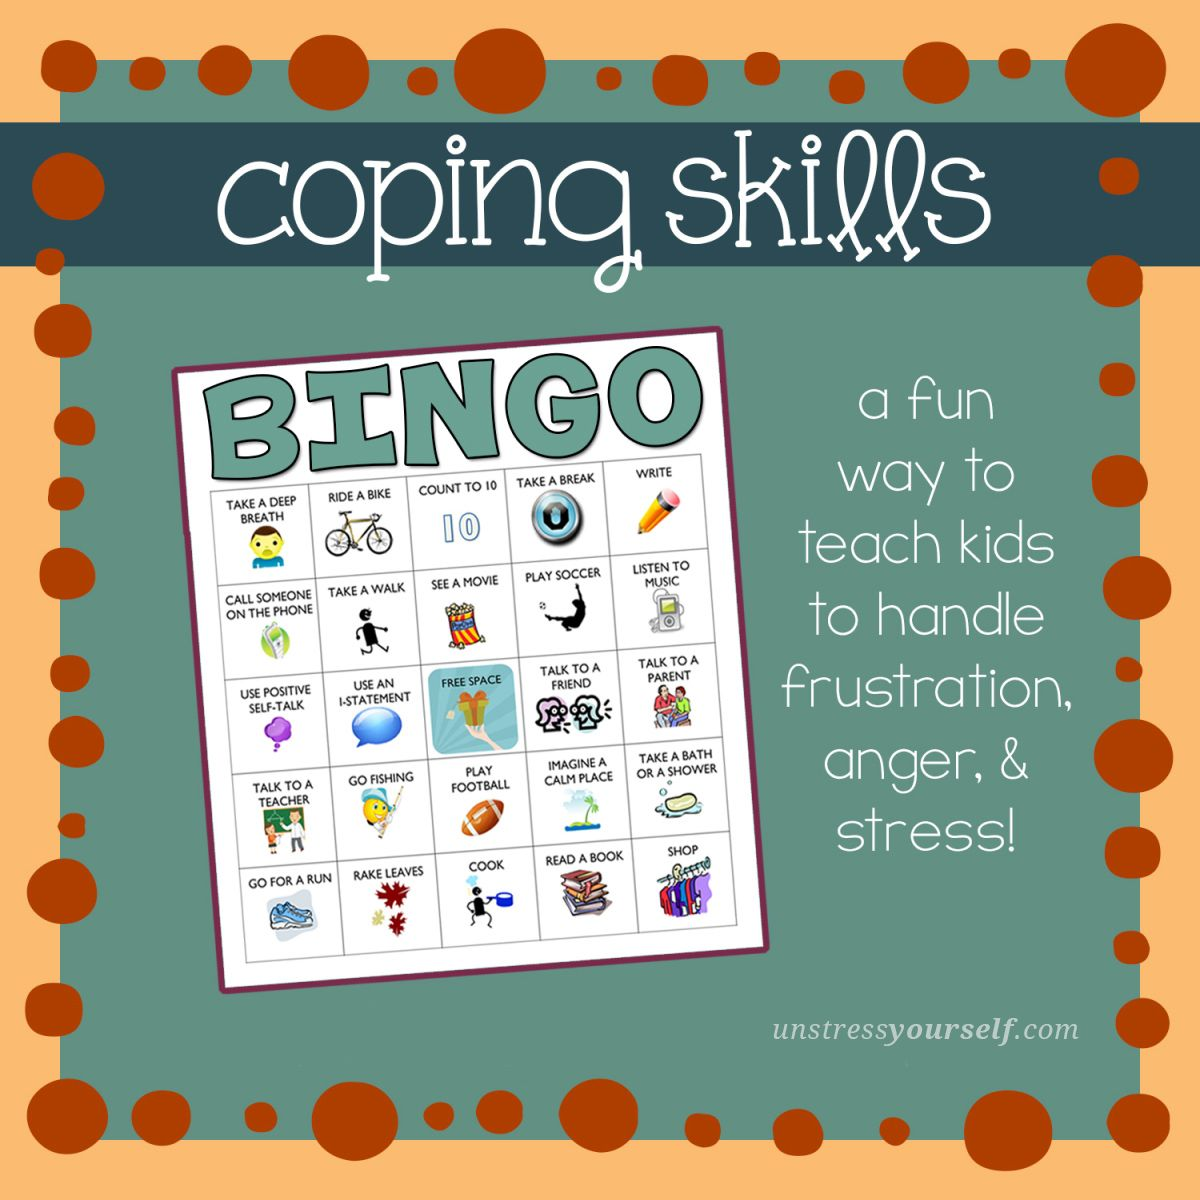 Discover The Top Seven Coping Skills Worksheets Designed To Help You Learn More Healthy Ways To